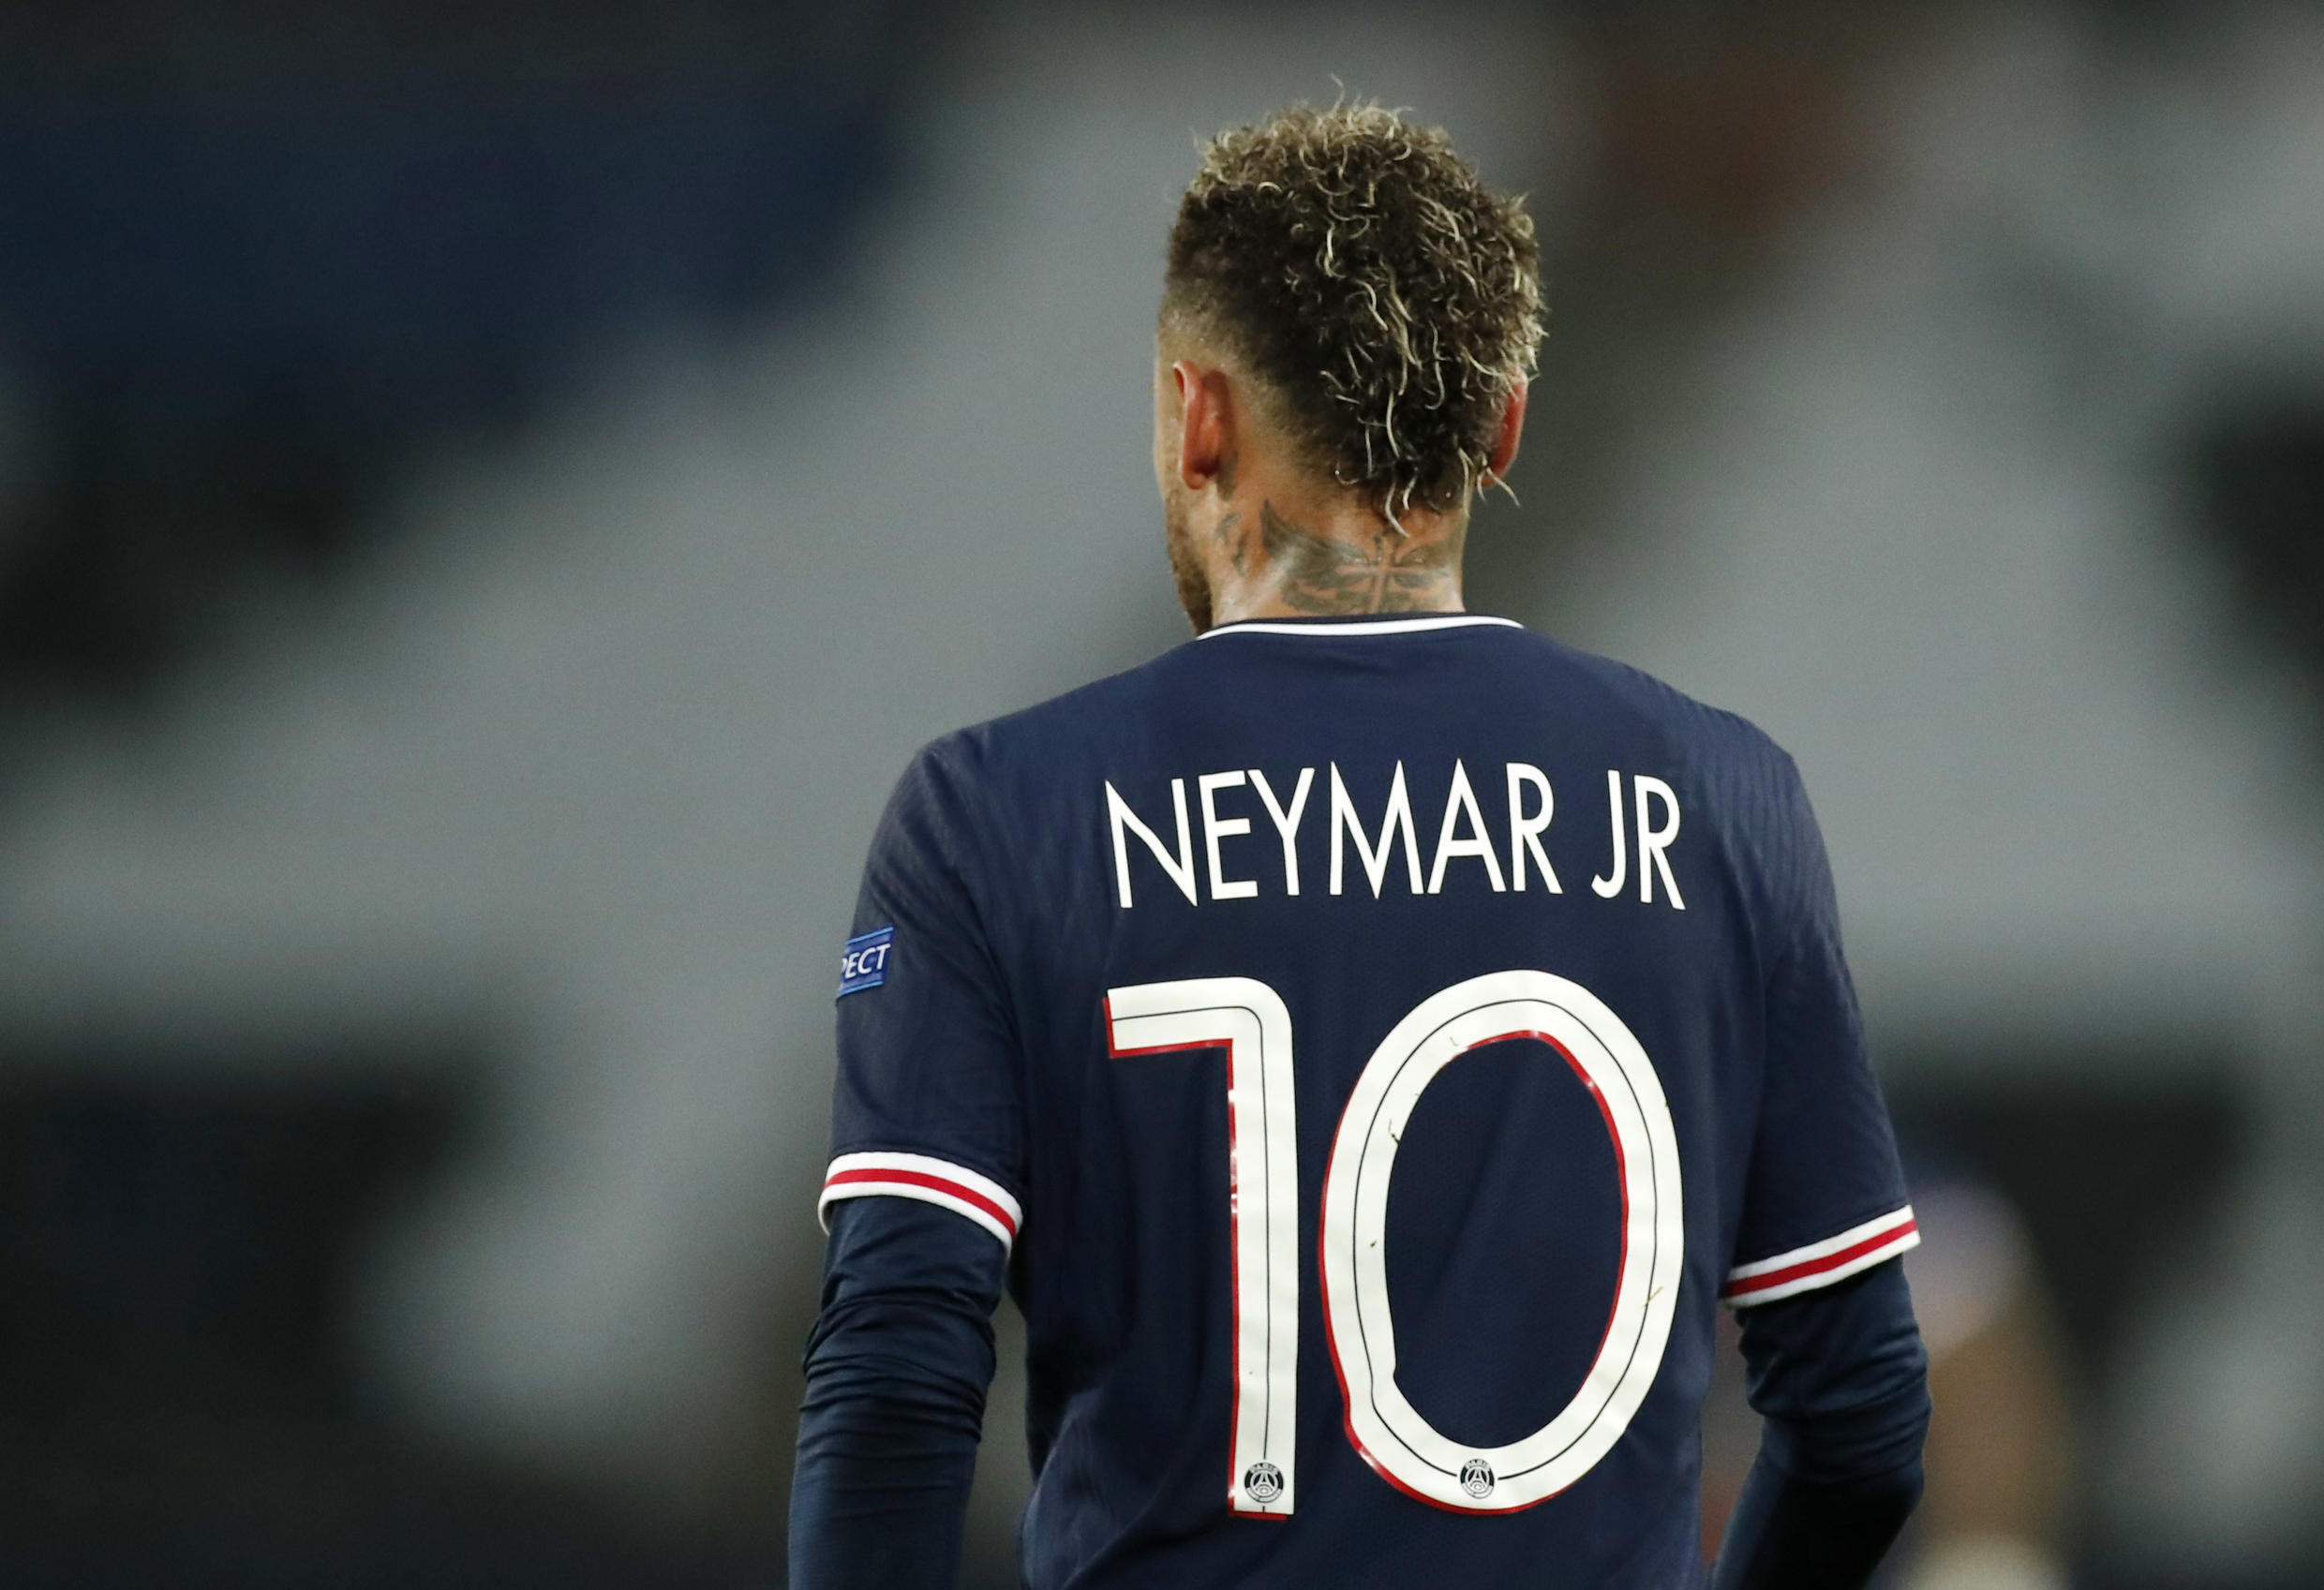 2021-04-28T194656Z_524045258_UP1EH4S1IY6FI_RTRMADP_3_SOCCER-CHAMPIONS-PSG-MCI-REPORT